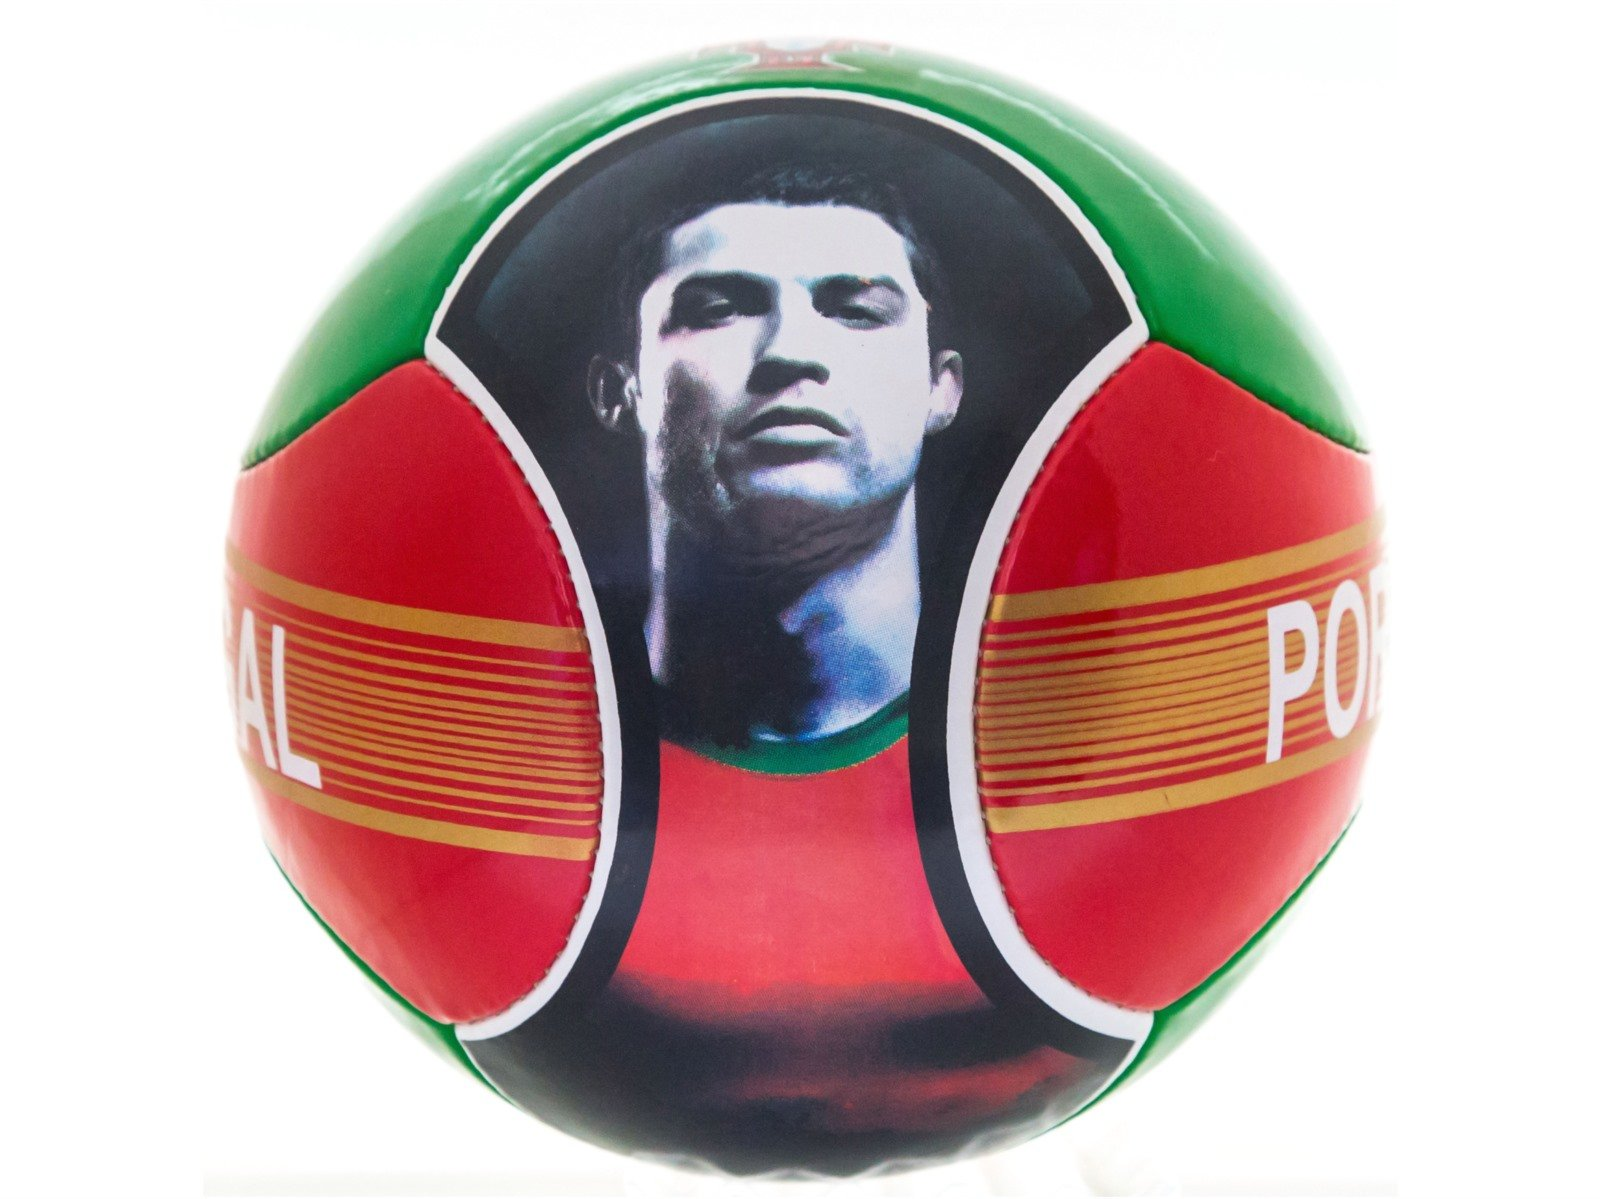 Soccer Ball Cristiano Ronaldo CR7 Portugal 6 Panels Red Green Official Size 5